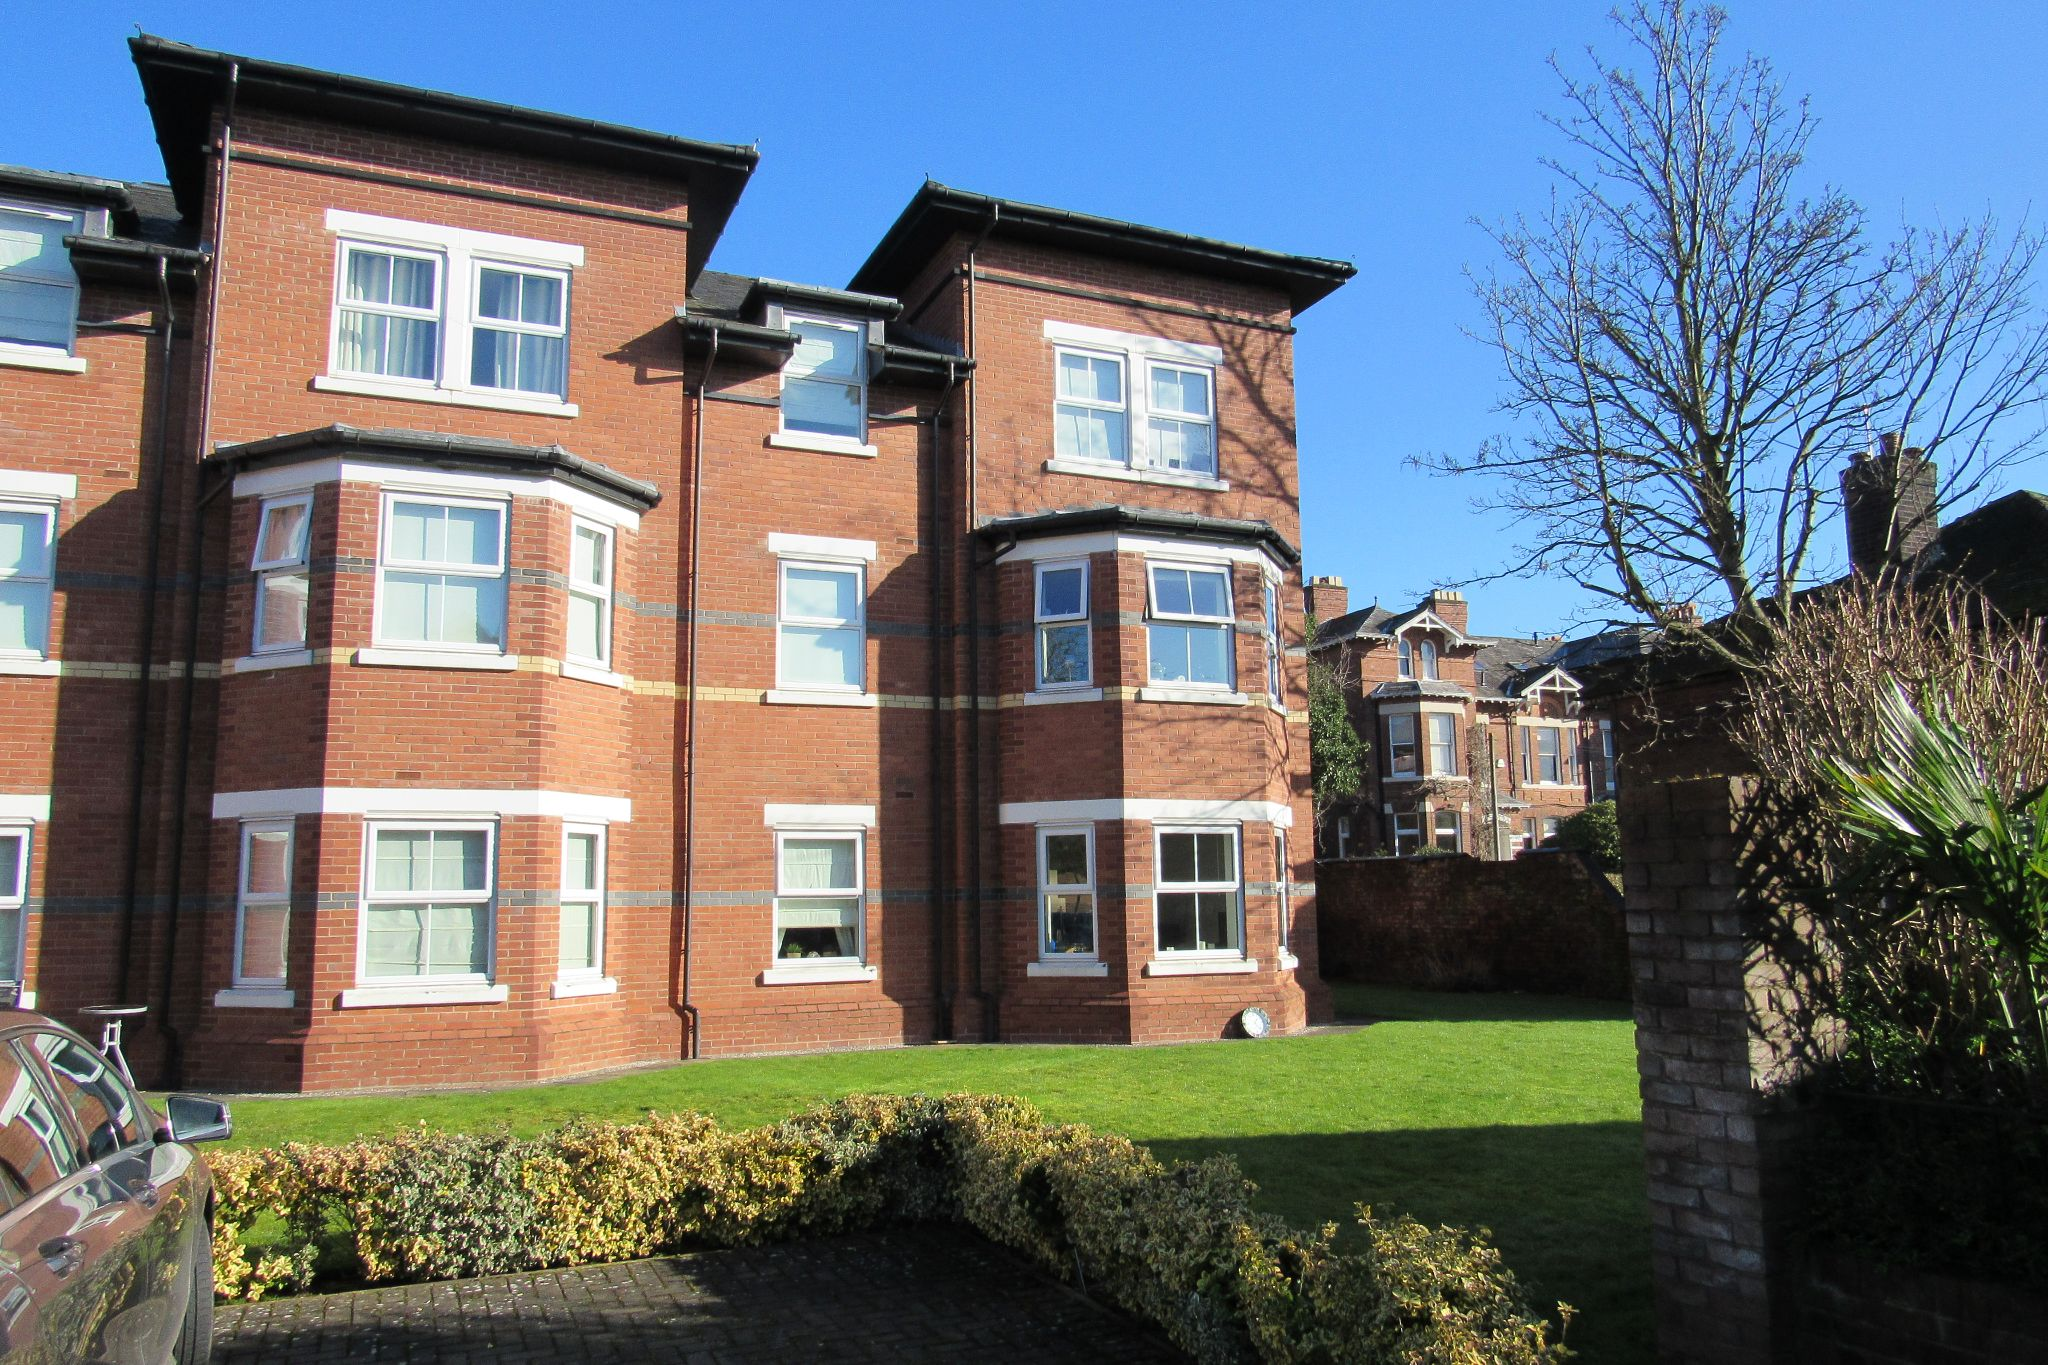 3 bedroom apartment flat/apartment SSTC in Sale - Photograph 1.